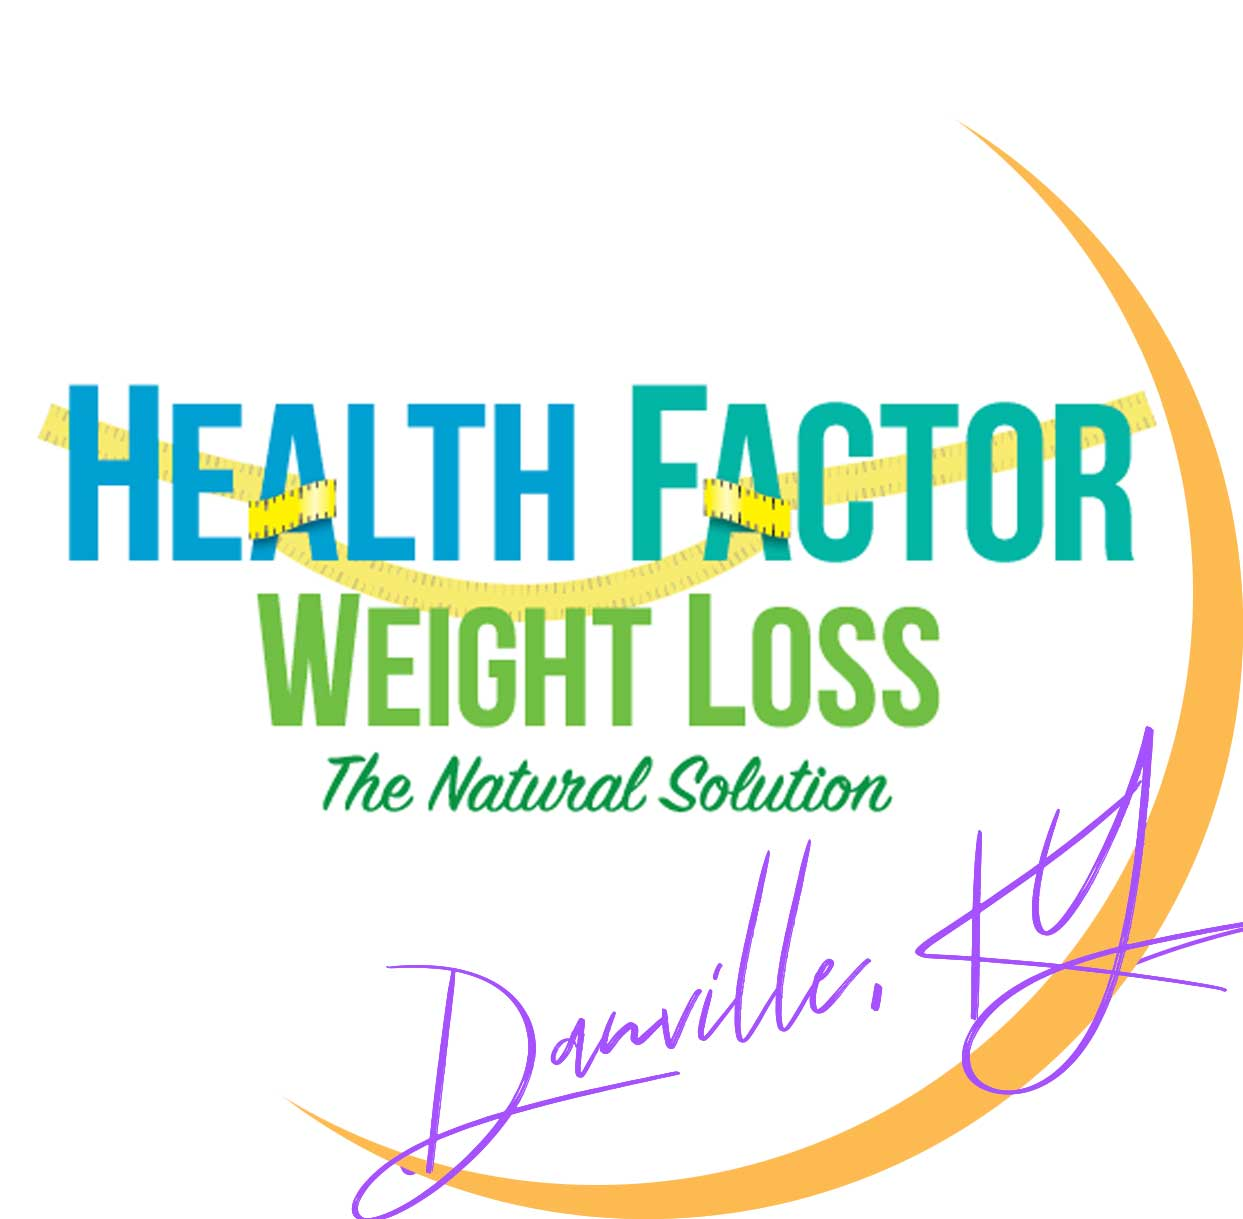 danville weight loss - danville Kentucky weight loss center